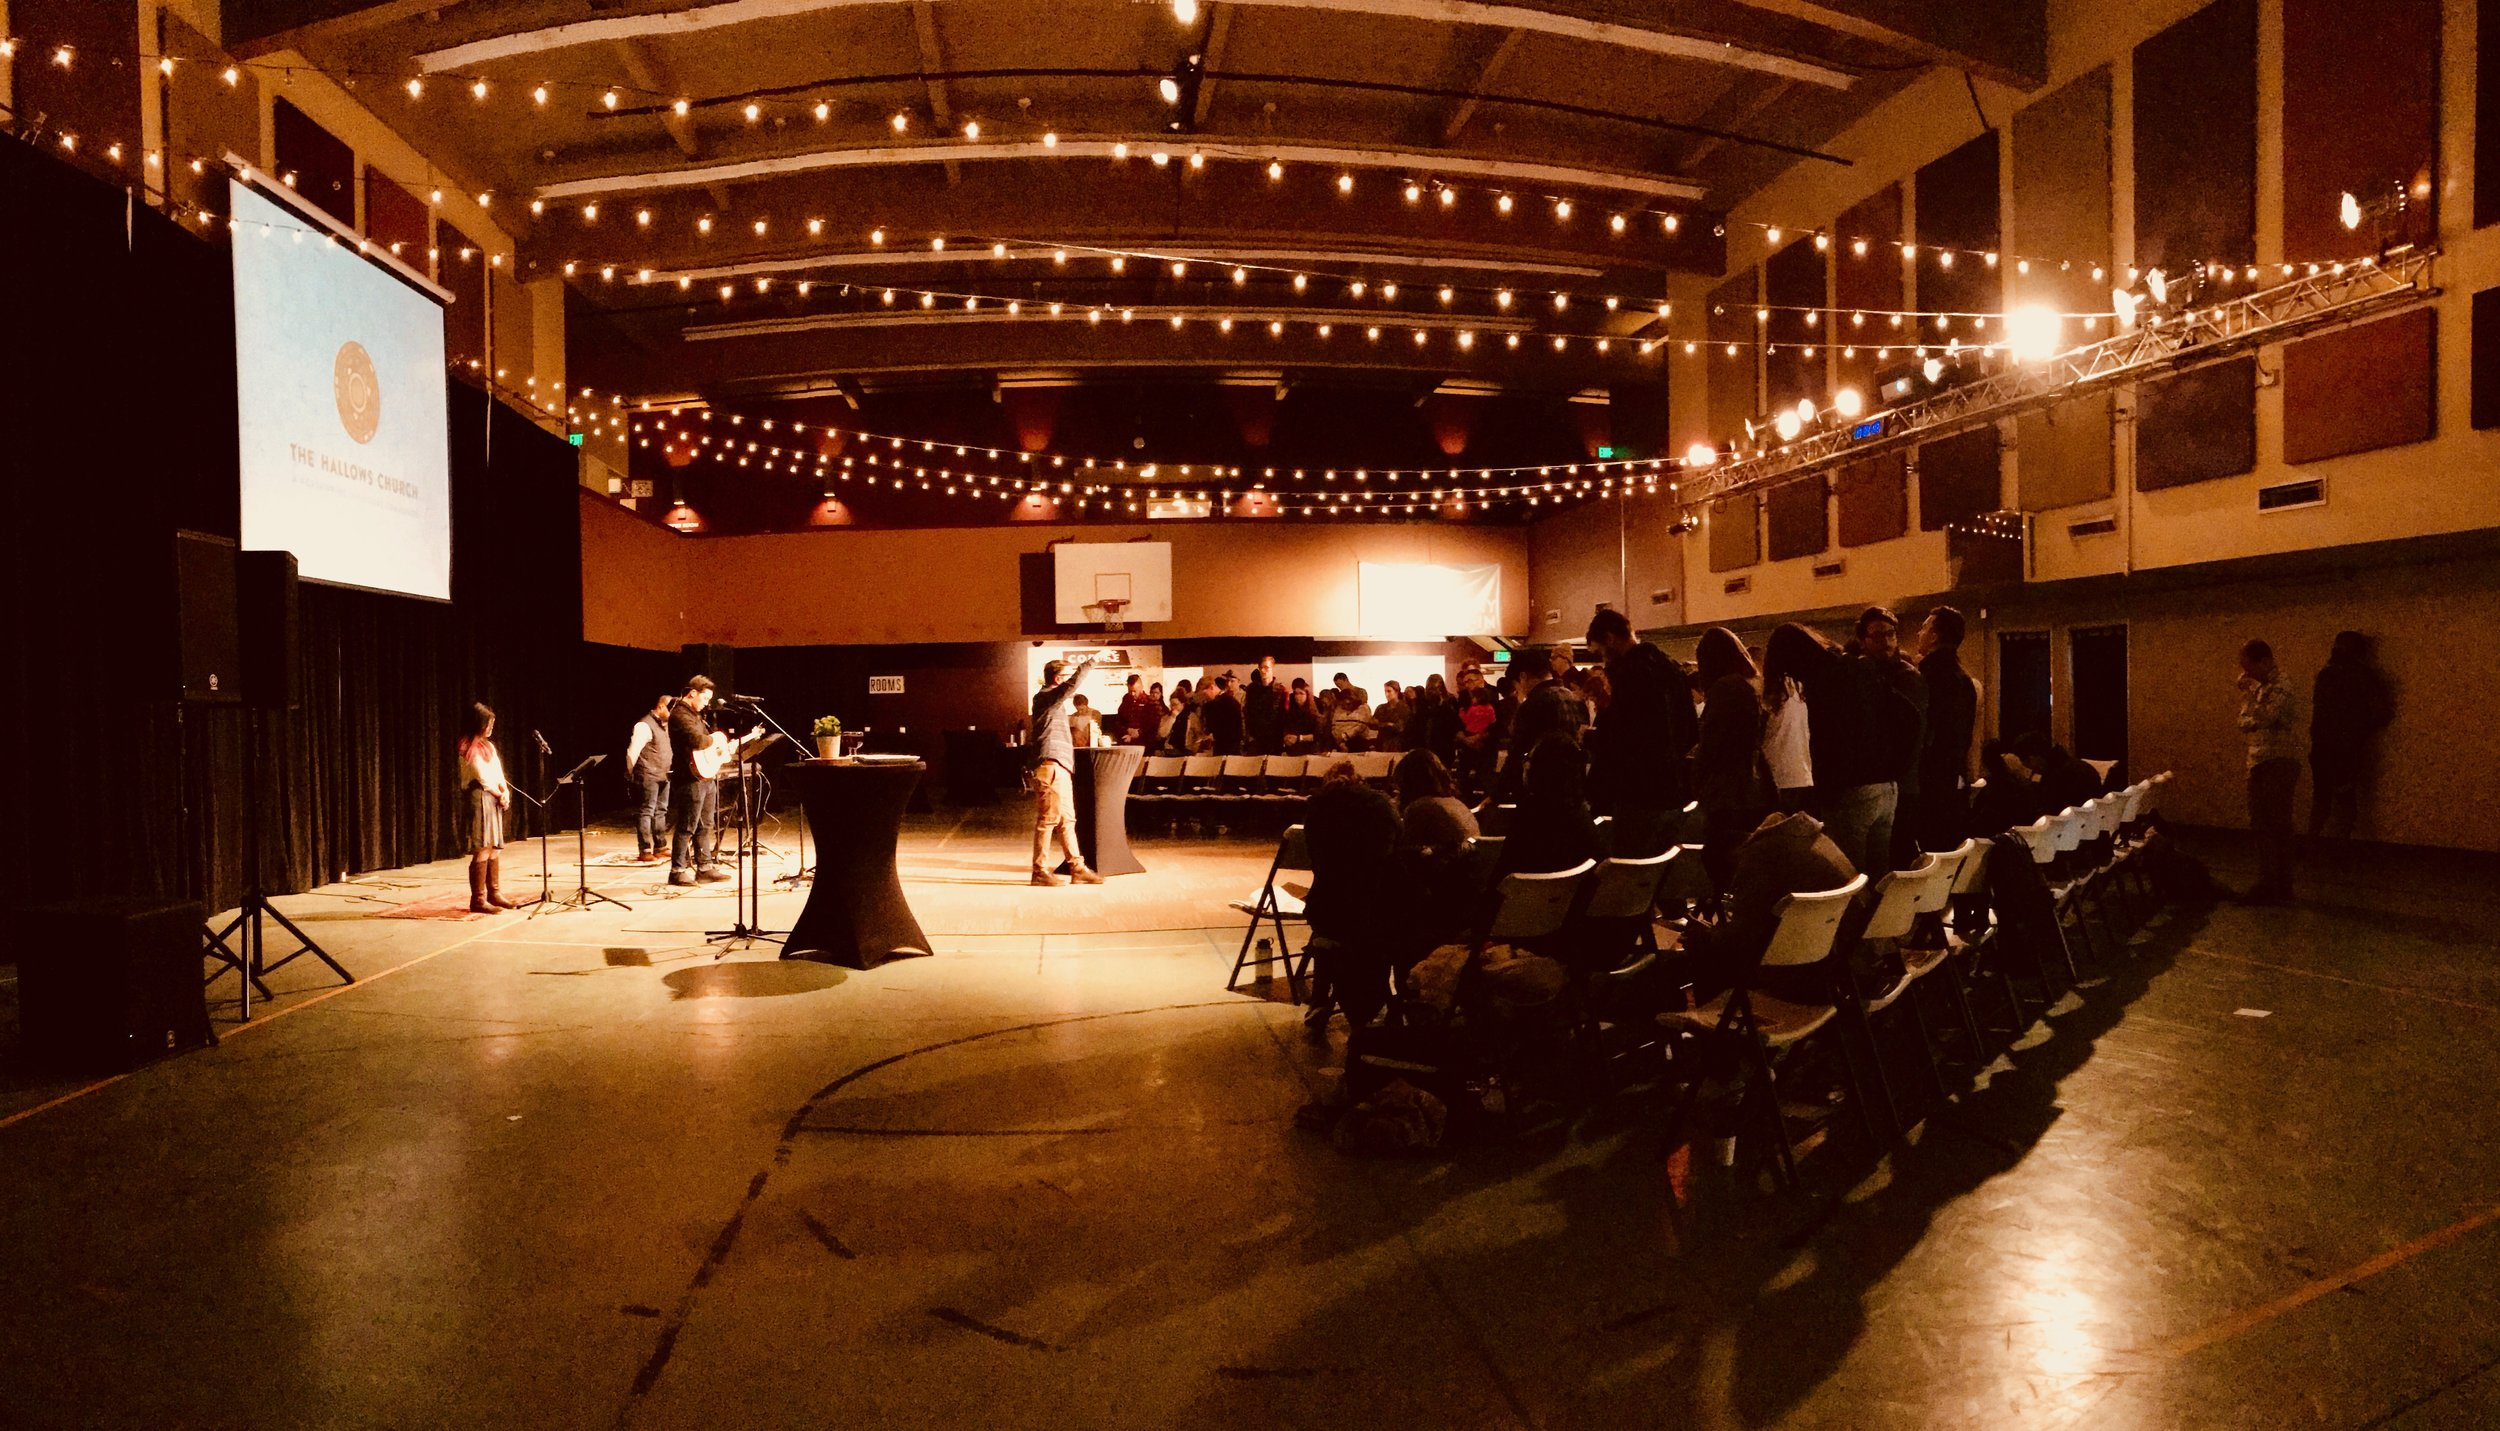 Our Fremont Expression's first worship gathering at our home across from the zoo (4900 Dayton Ave. N.) at 4 p.m. this past Sunday.